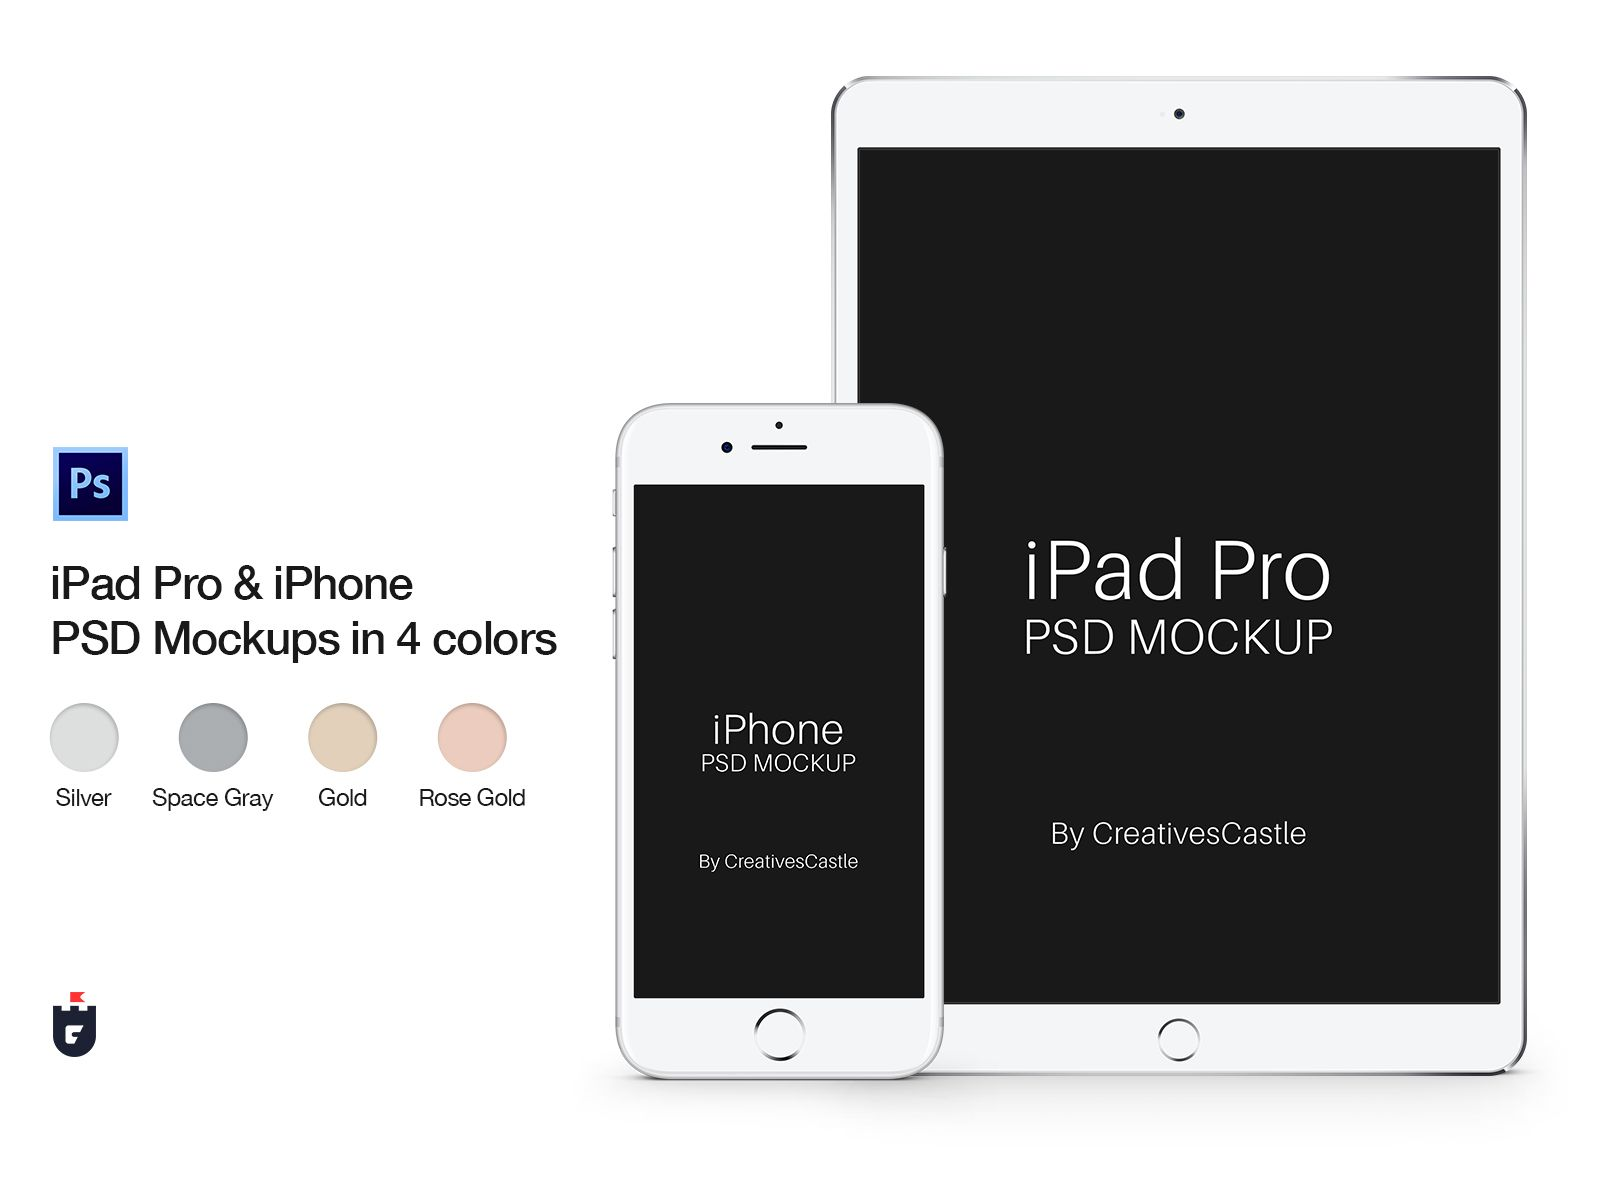 Download Iphone Ipad Pro Psd Mockups In 4 Colors Iphone Mockup Psd Mockup Psd Ipad Pro